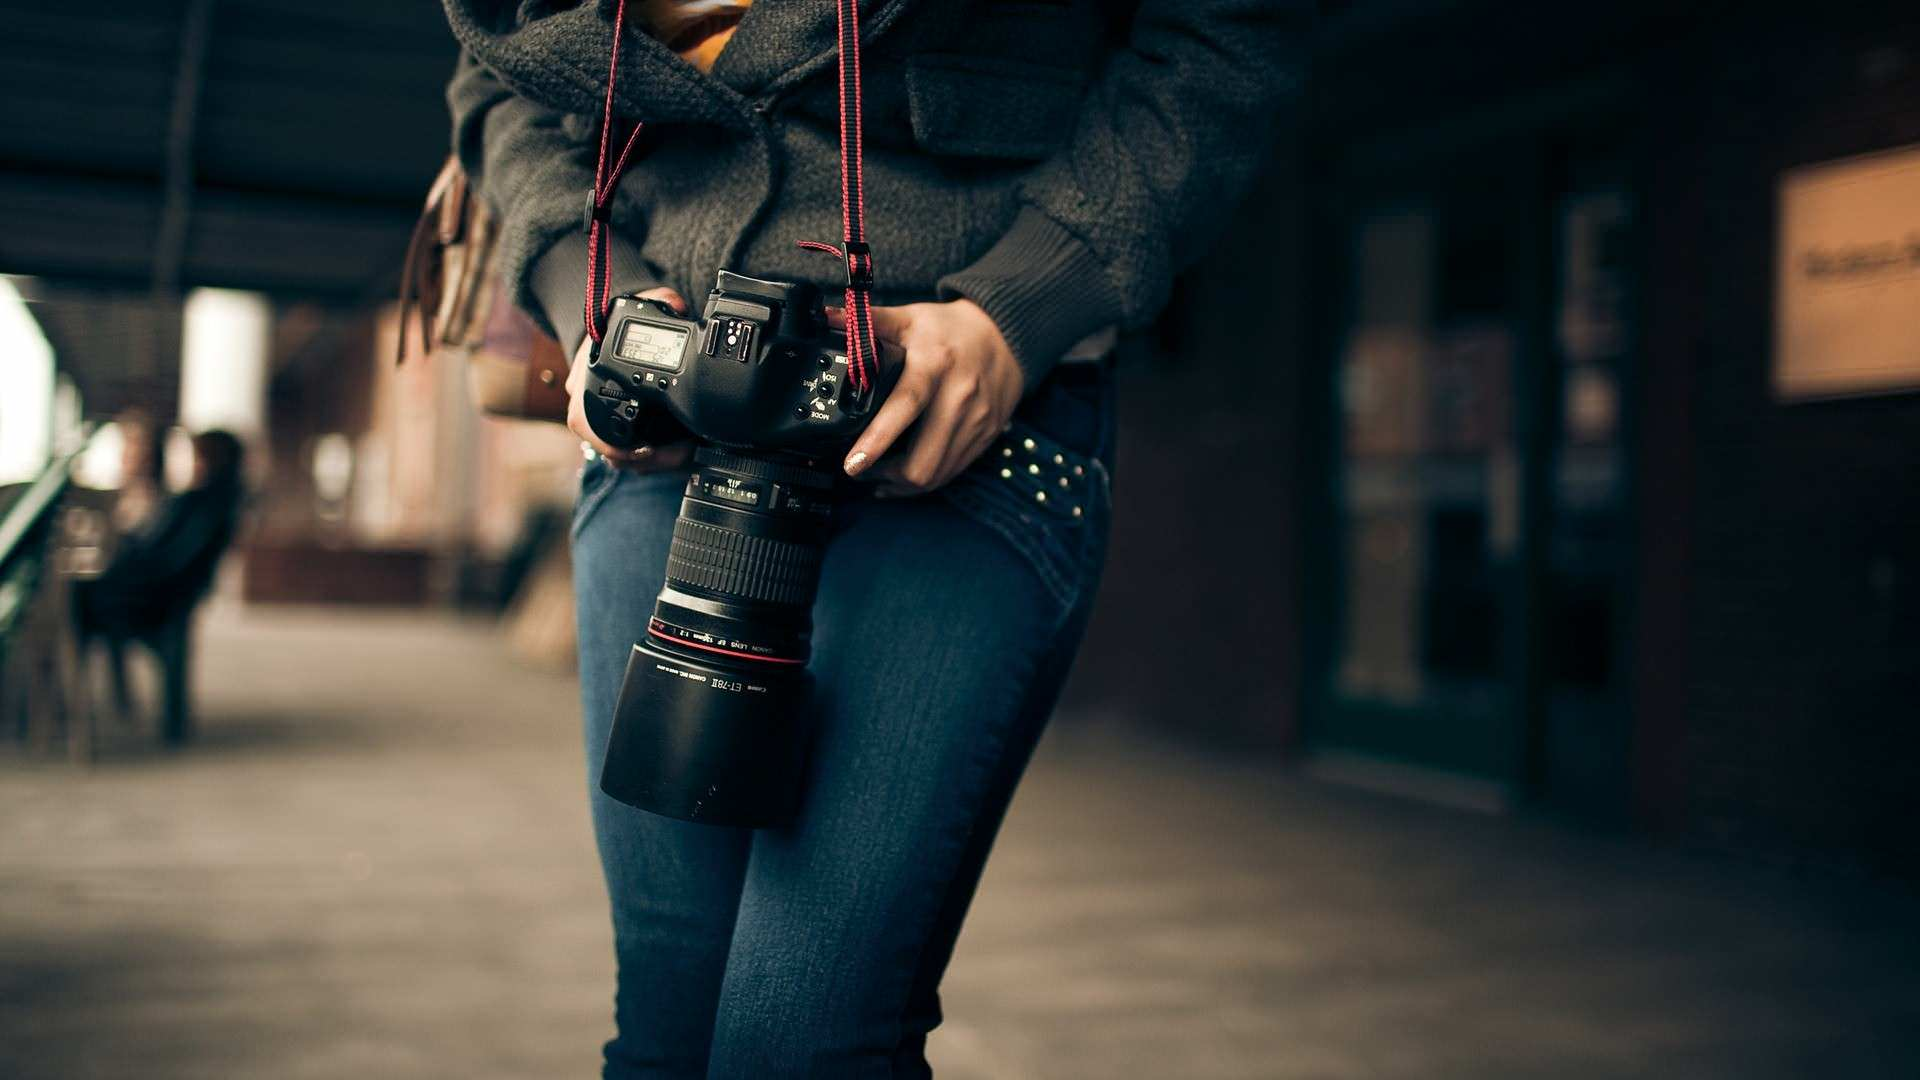 How to take good picture from dslr camera 4pda